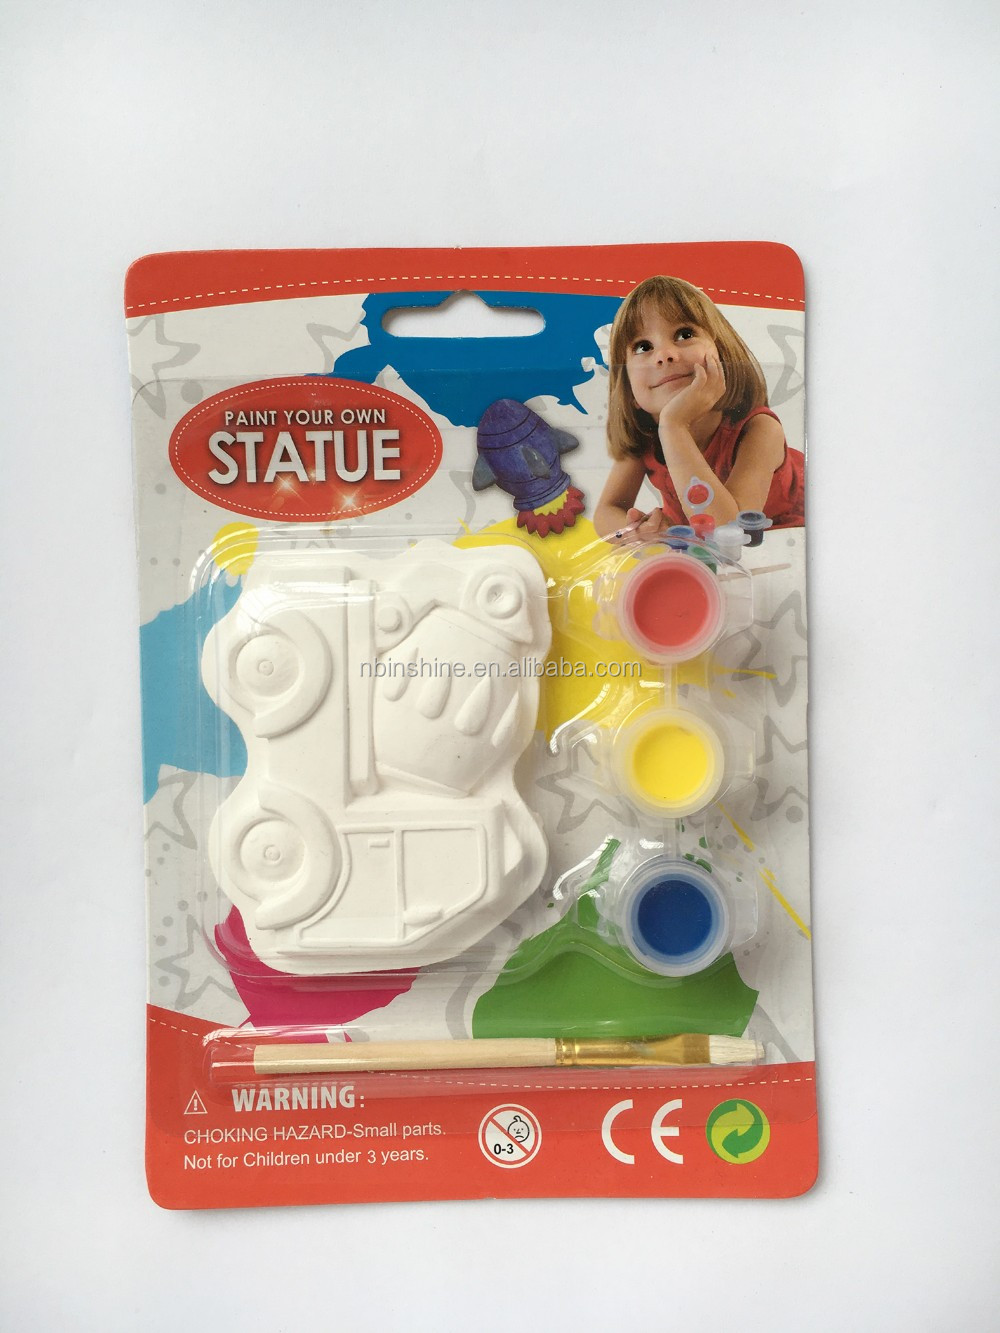 CU2562-3 Car shape kids DIY ceramic paint set , painting education bisque car